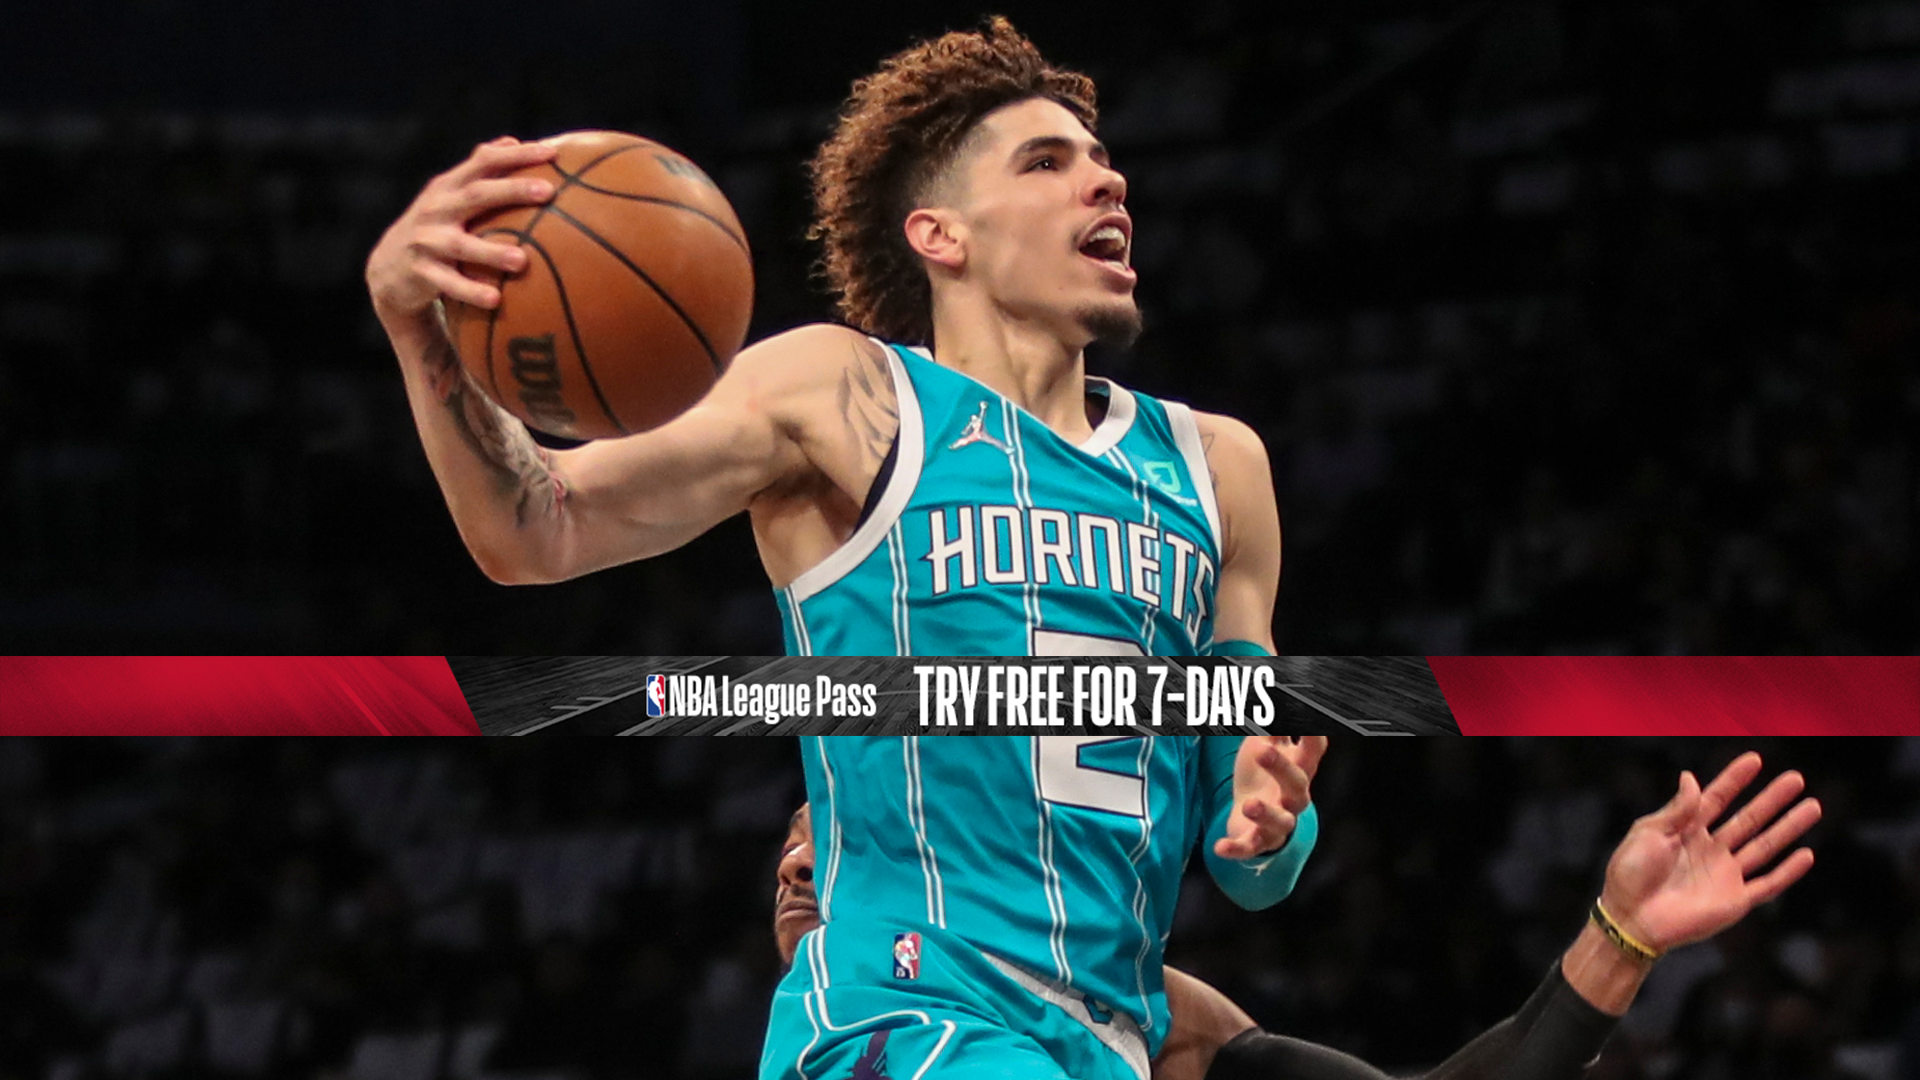 LaMelo, Hornets host Celtics, look to stay undefeated